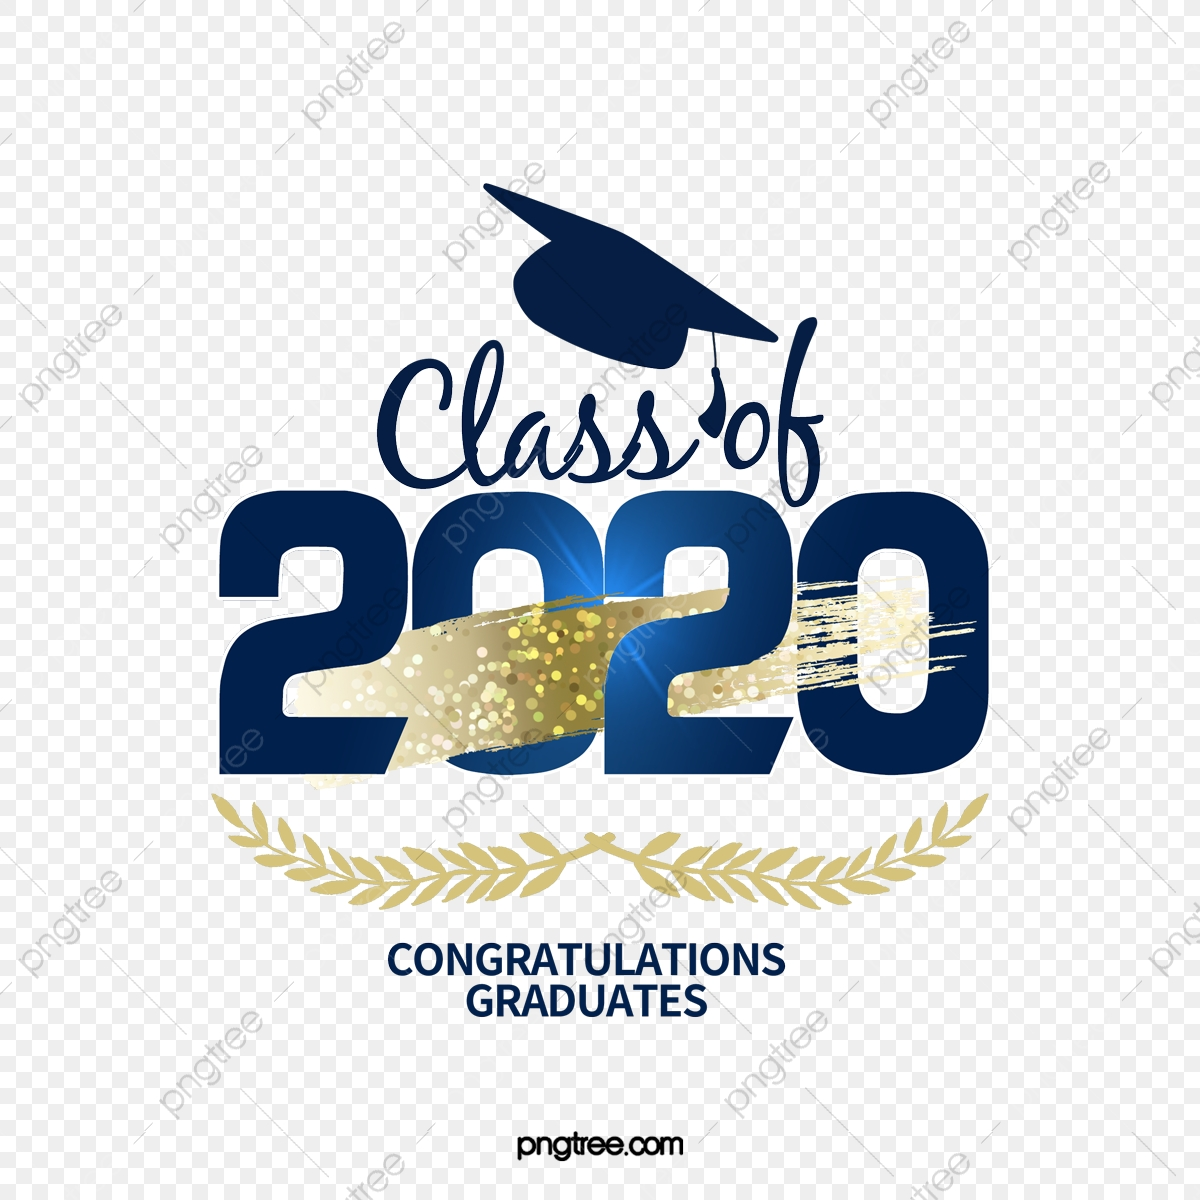 2020 png images vector and psd files free download on pngtree https pngtree com freepng 2020 graduation creative logo 5324467 html